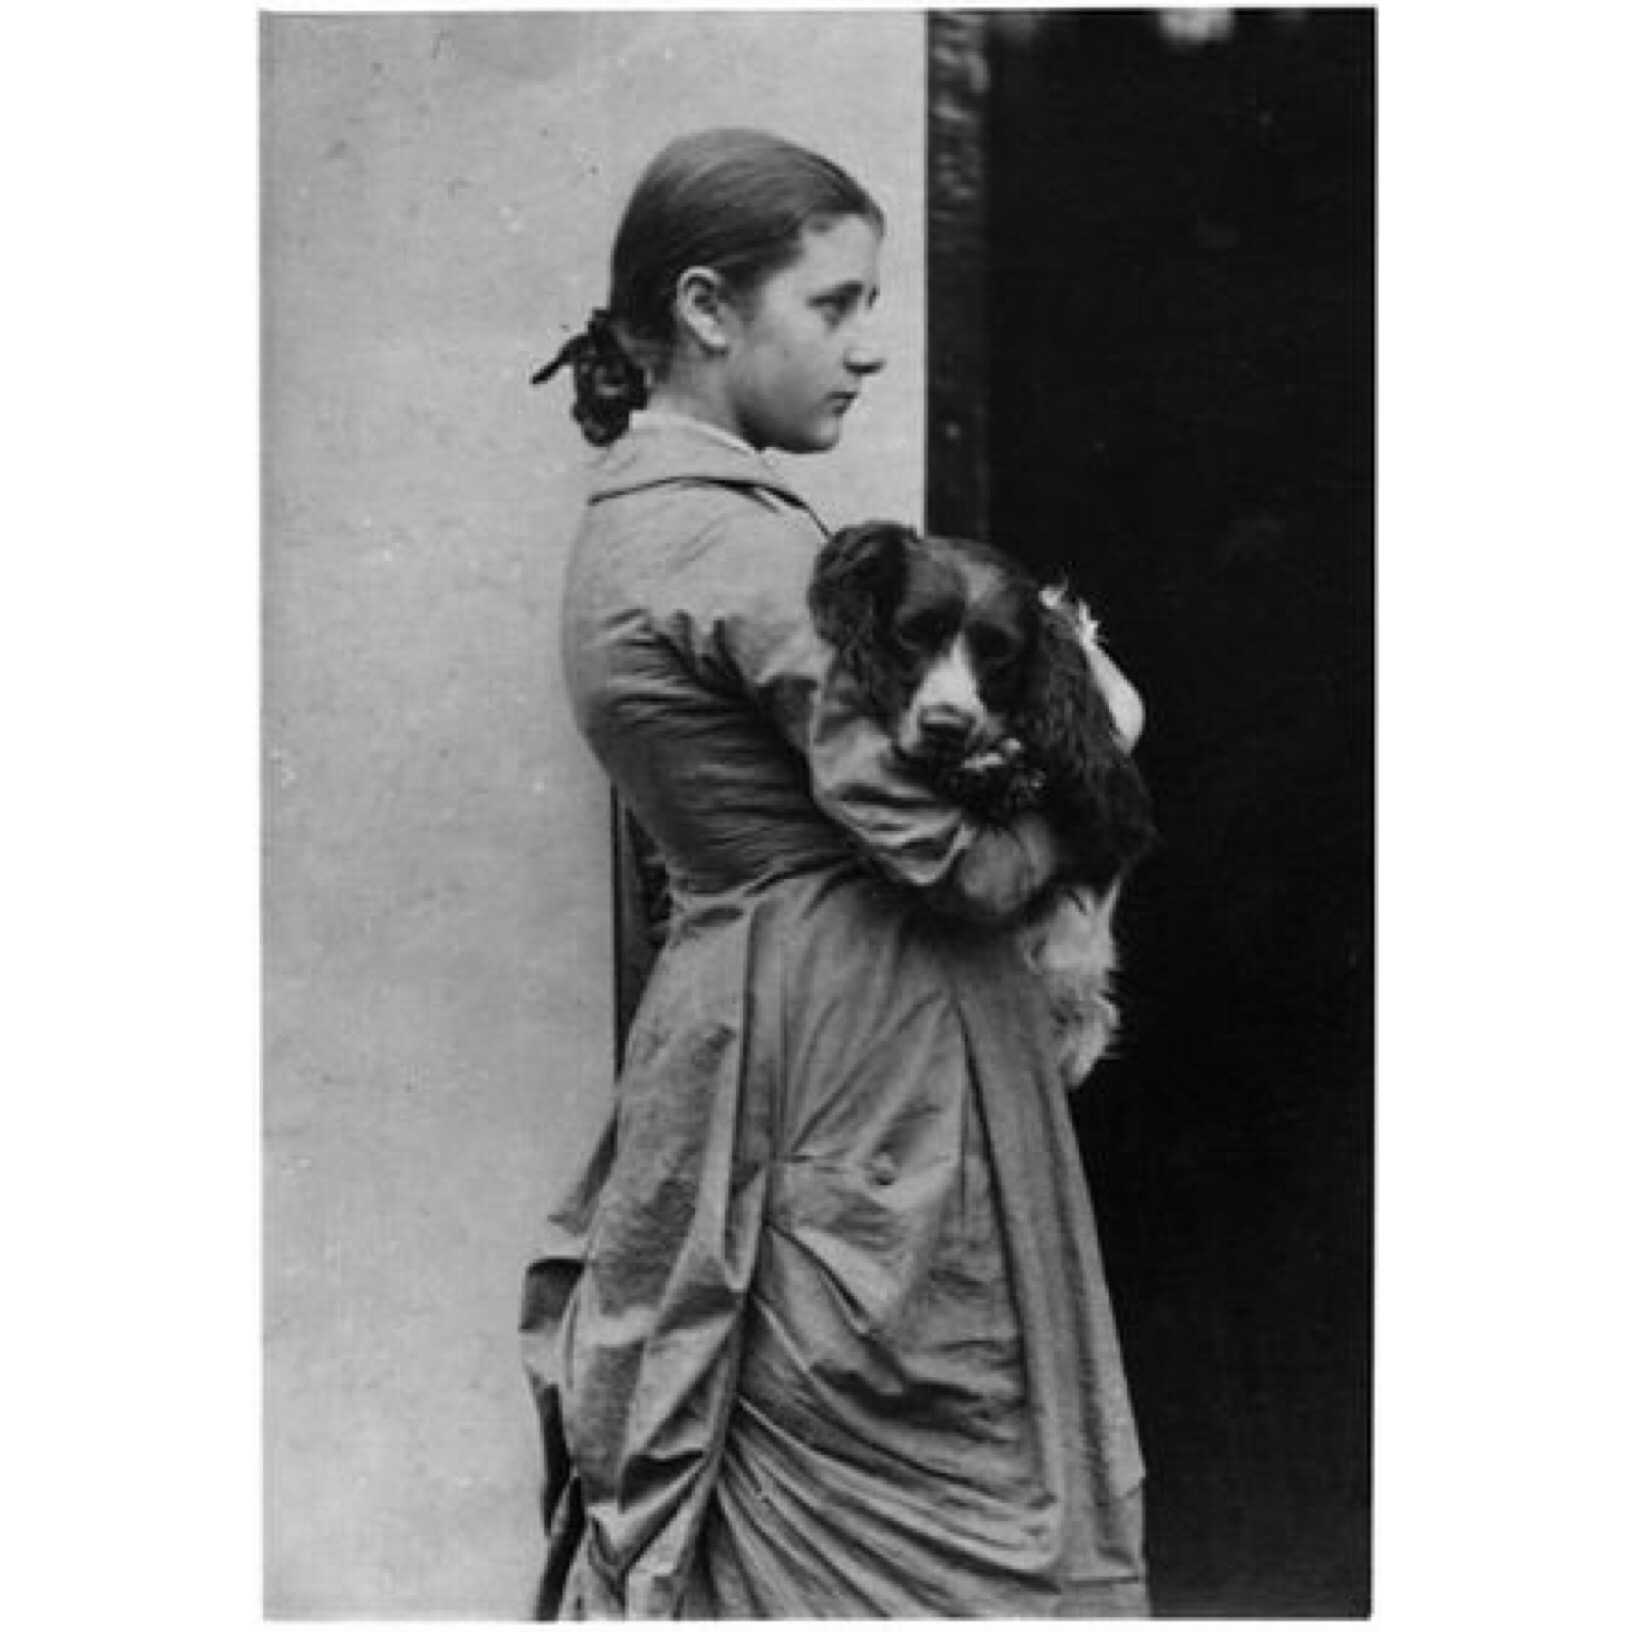 Beatrix at age 15 with Spot;